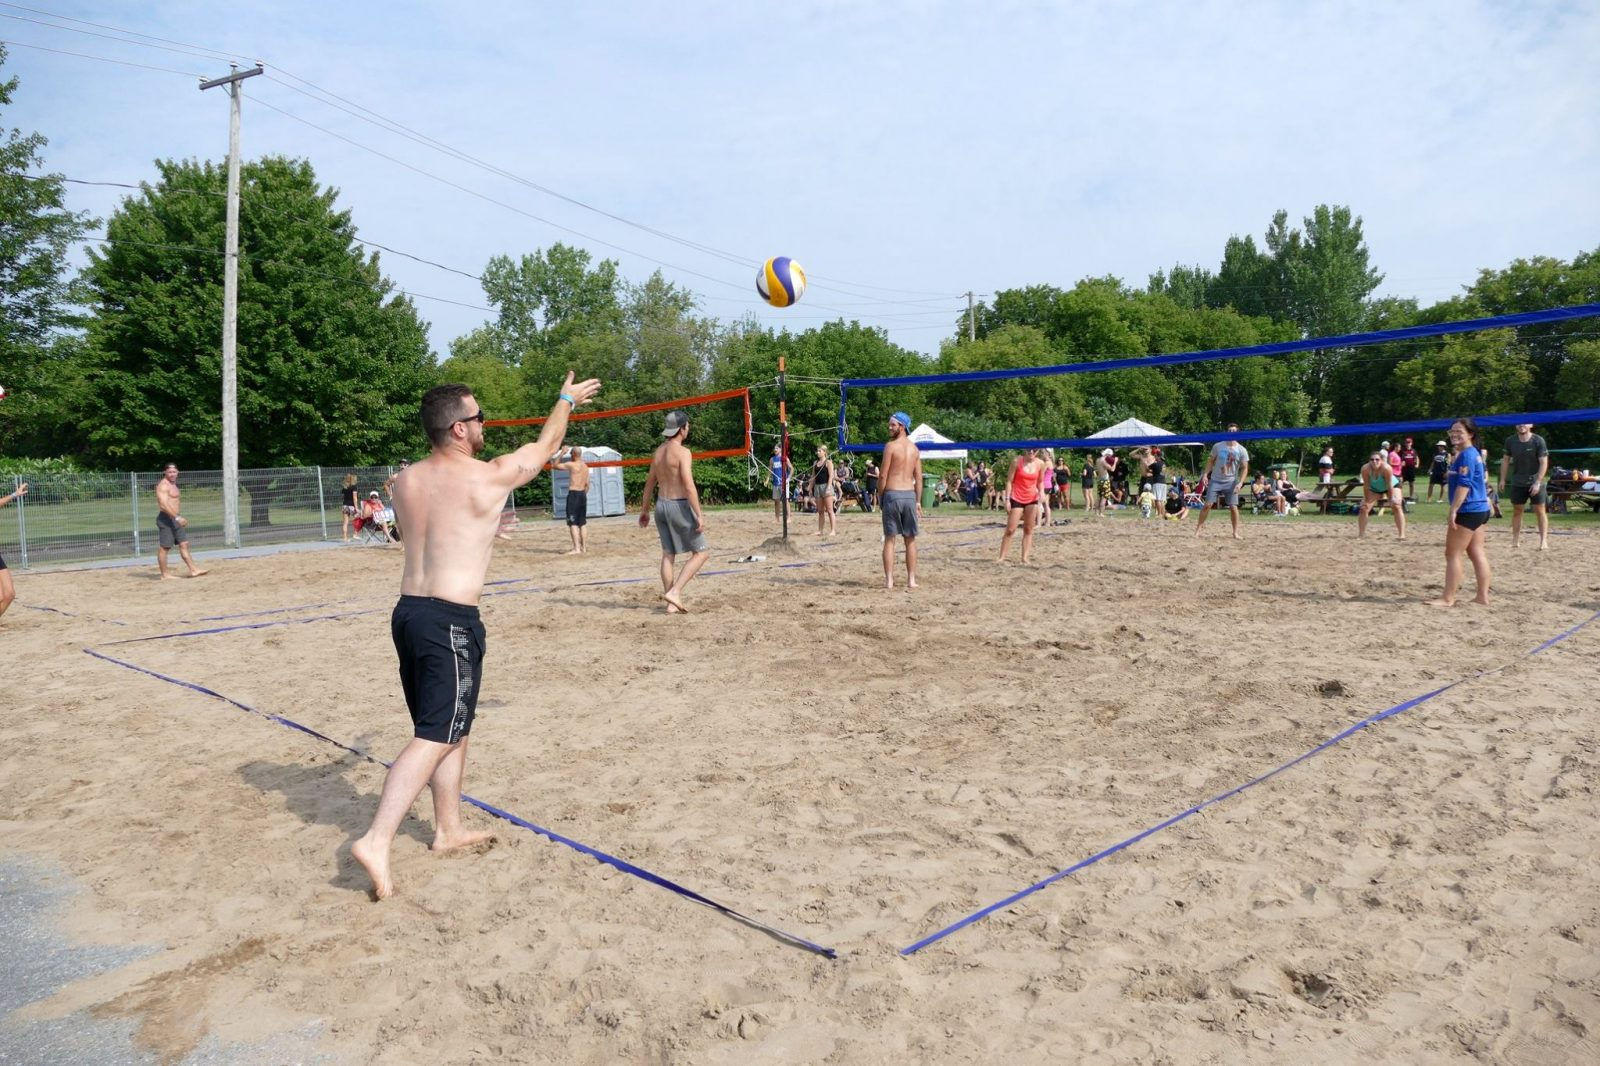 Tournoi de volleyball de plage: la tradition se poursuit à Farnham